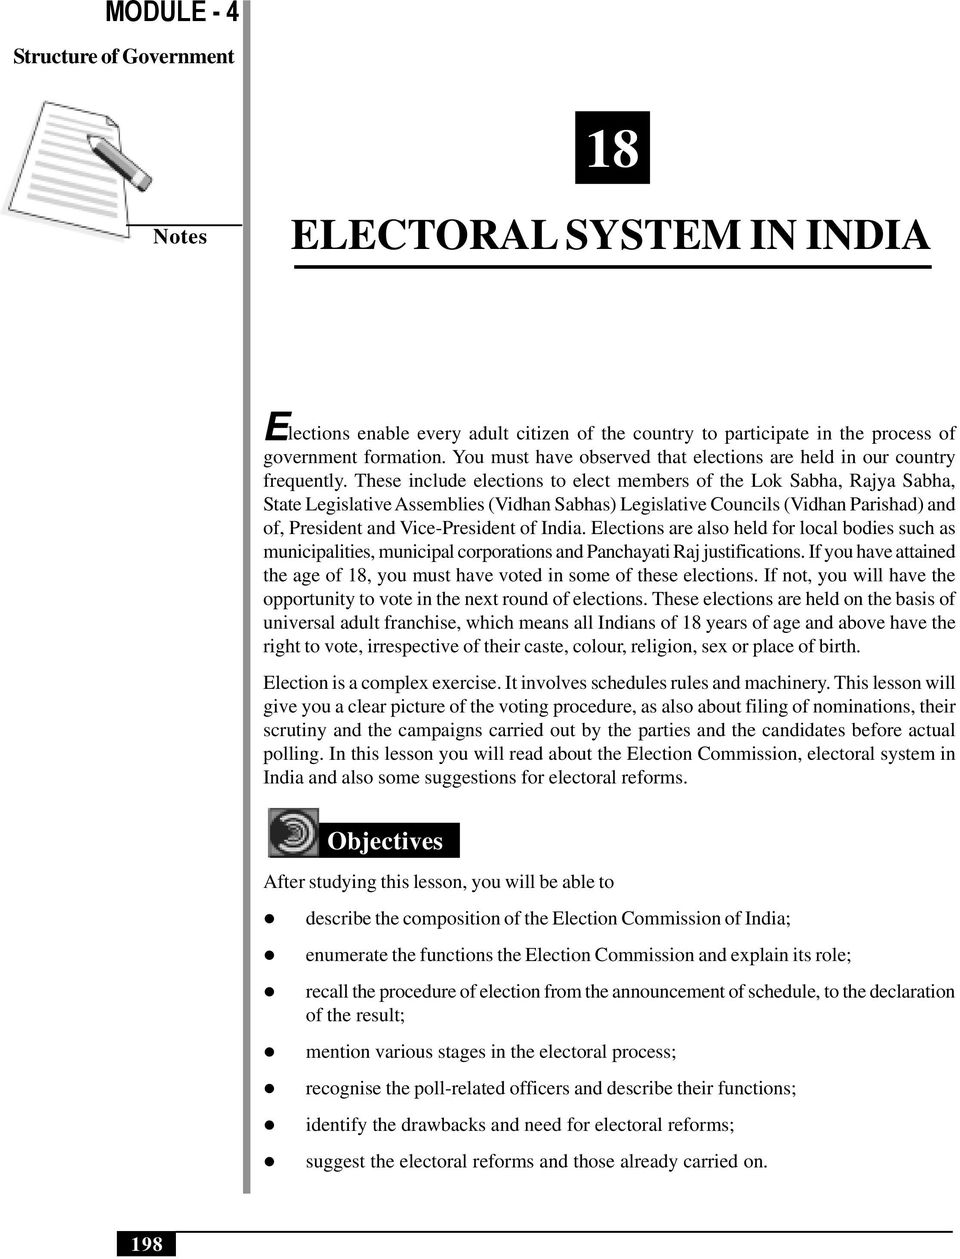 These include elections to elect members of the Lok Sabha, Rajya Sabha, State Legislative Assemblies (Vidhan Sabhas) Legislative Councils (Vidhan Parishad) and of, President and Vice-President of